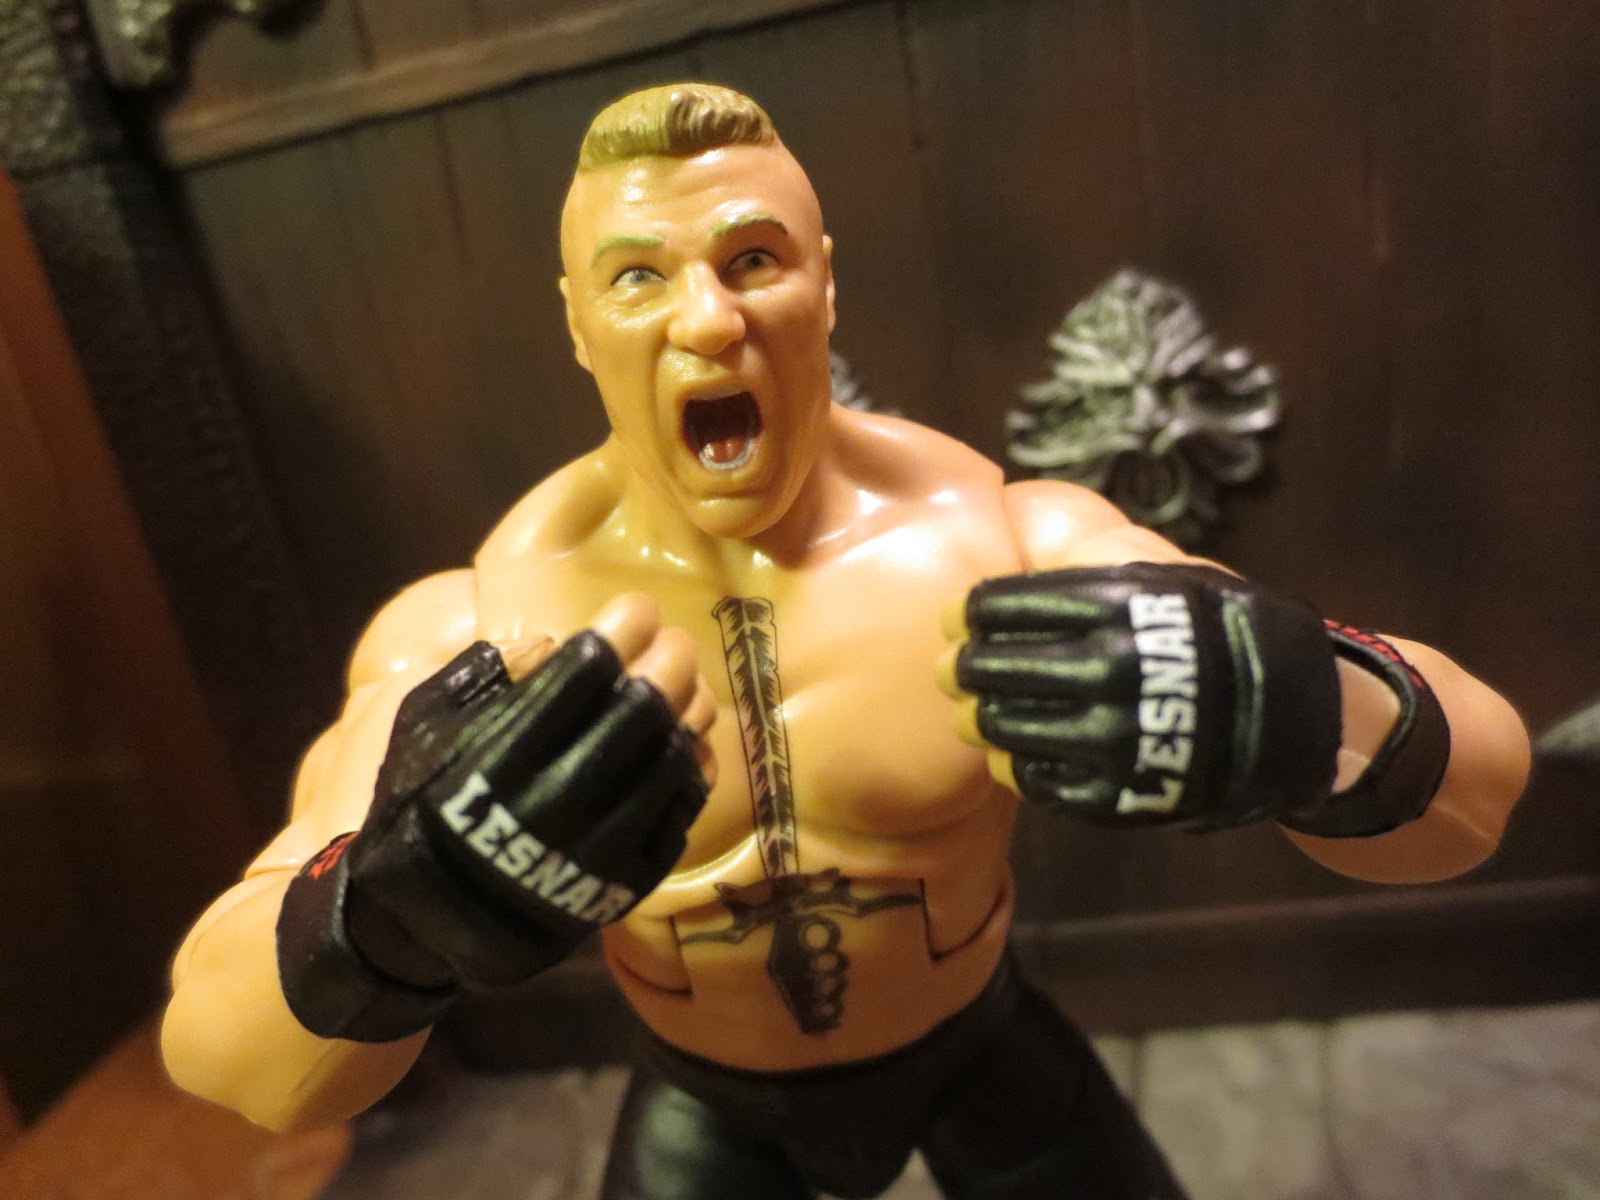 Ill Just Say It The Extreme Pterodactyl Scream Expression On Brock Lesnars Face Sold Me This Figure I Know That Facial Expressions Action